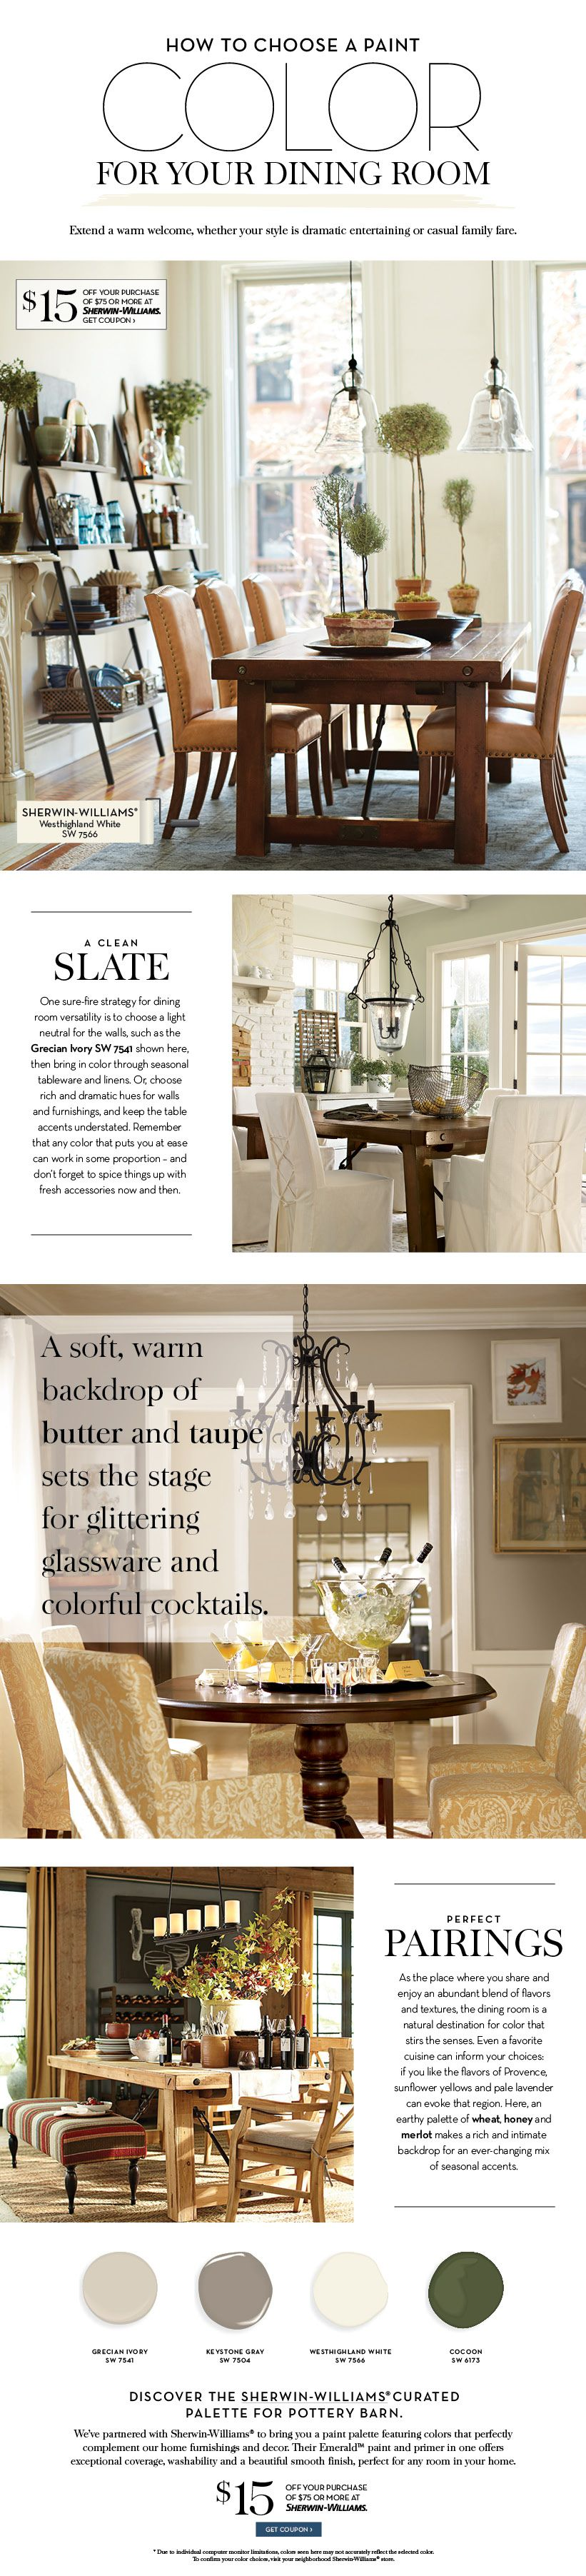 How to choose a paint color for your dining room for the home